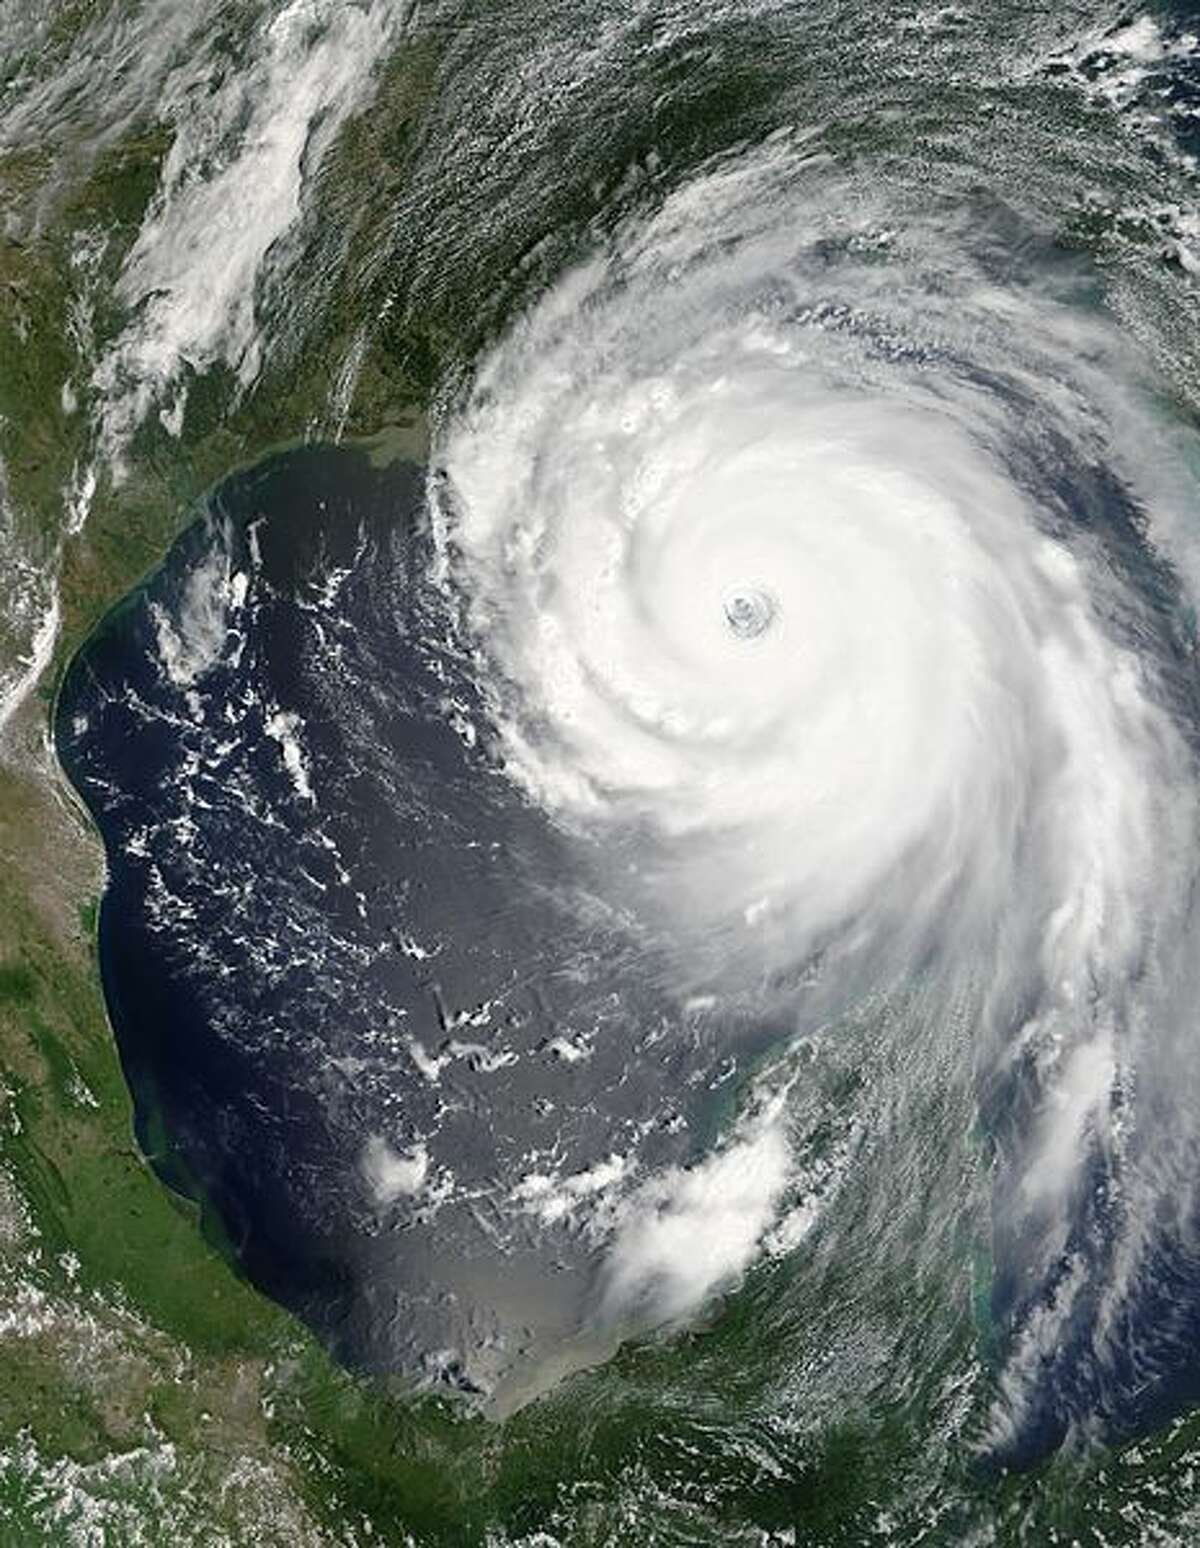 Two hours after the National Hurricane Center issued their warning, the Moderate Resolution Imaging Spectroradiometer (MODIS) captured this image from NASA's Terra satellite at 1:00 p.m. Eastern Daylight Savings Time. The massive storm covers much of the Gulf of Mexico, spanning from the U.S. coast to the Yucatan Peninsula.